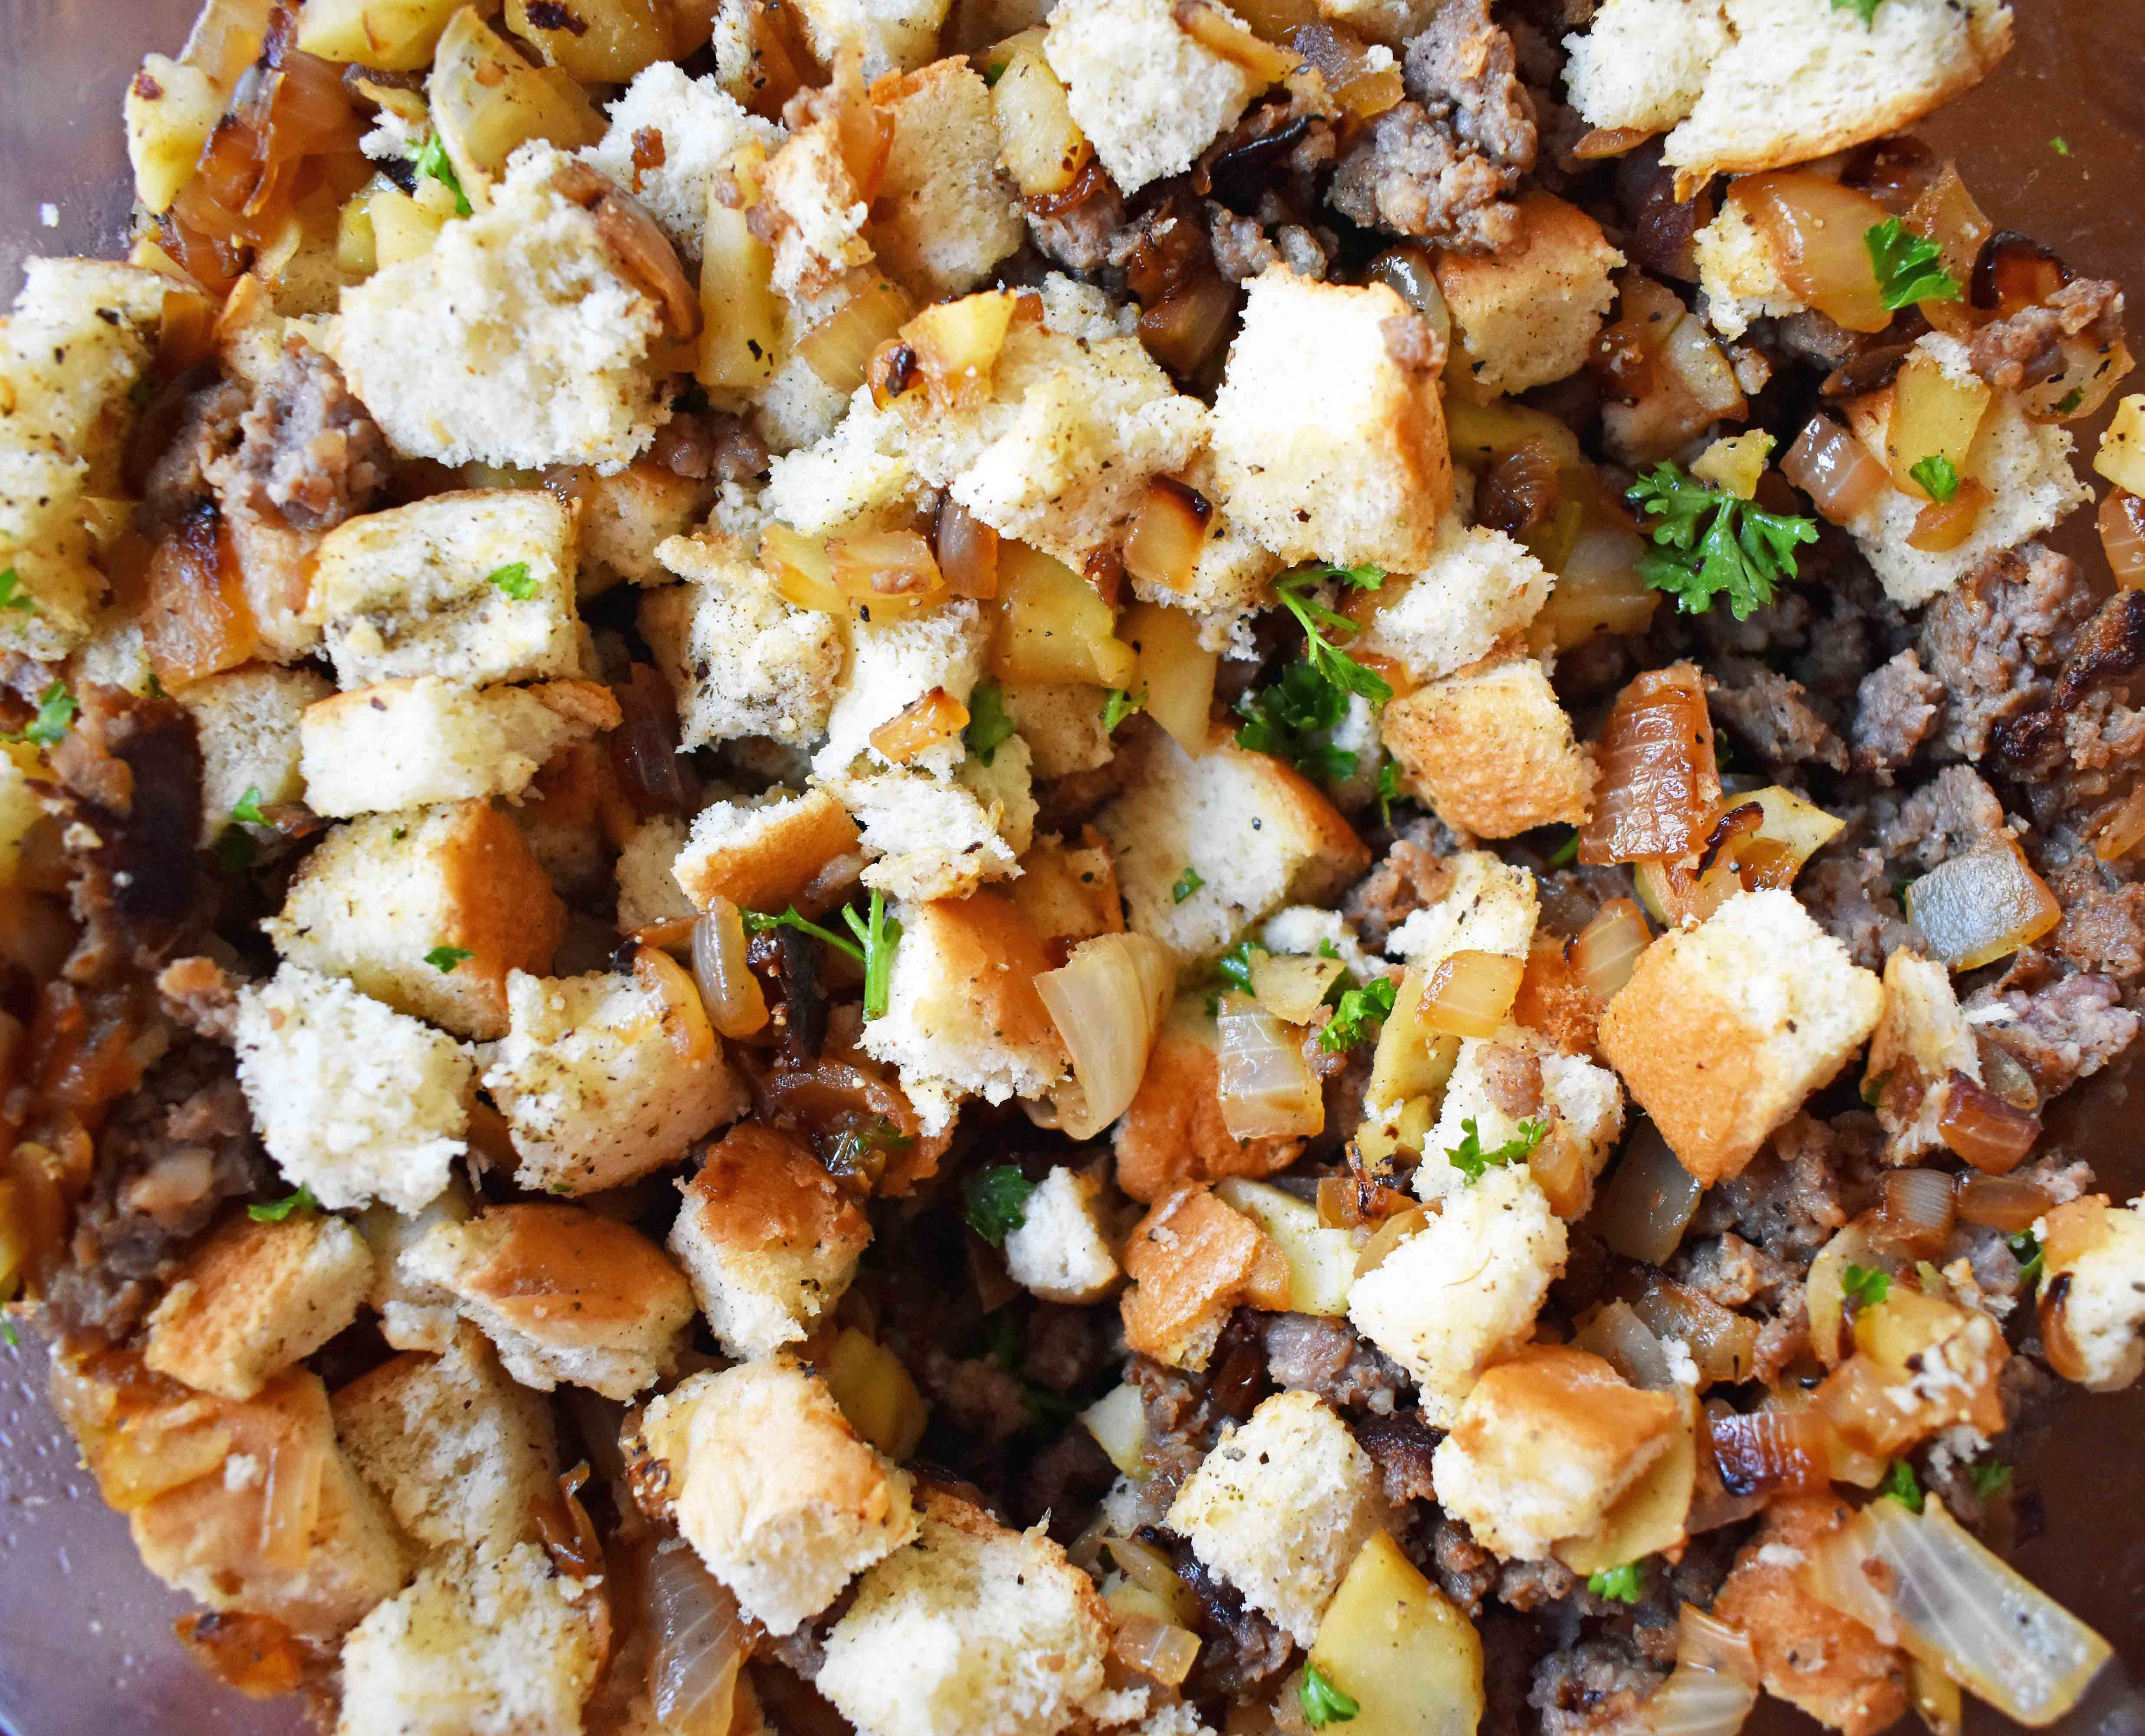 Cranberry Apple Sausage Stuffing by Modern Honey. Classic Bread Stuffing with Sausage, Dried Cranberries, and Crisp Apples. The perfect Thanksgiving side dish recipe!